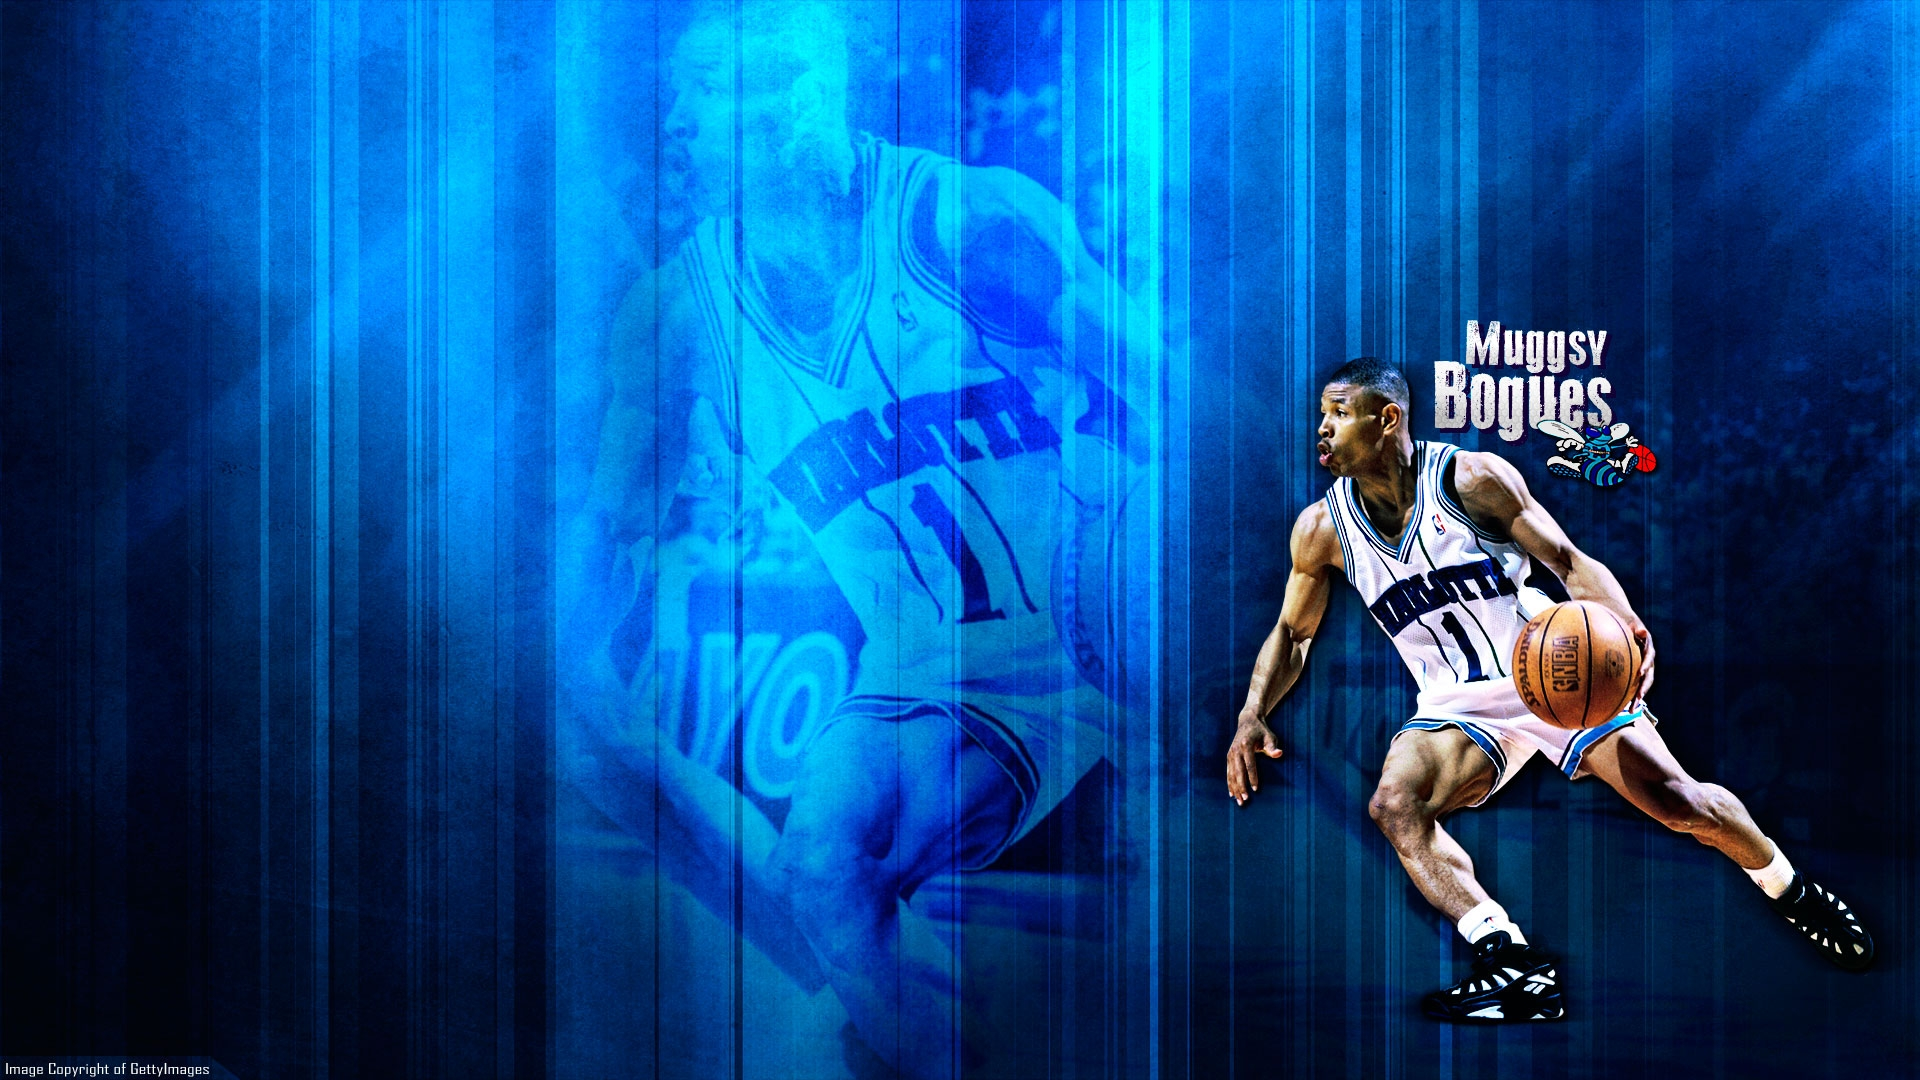 Futuristic Iphone X Wallpaper Muggsy Bogues Basketball Wallpaper Hd Wallpapers